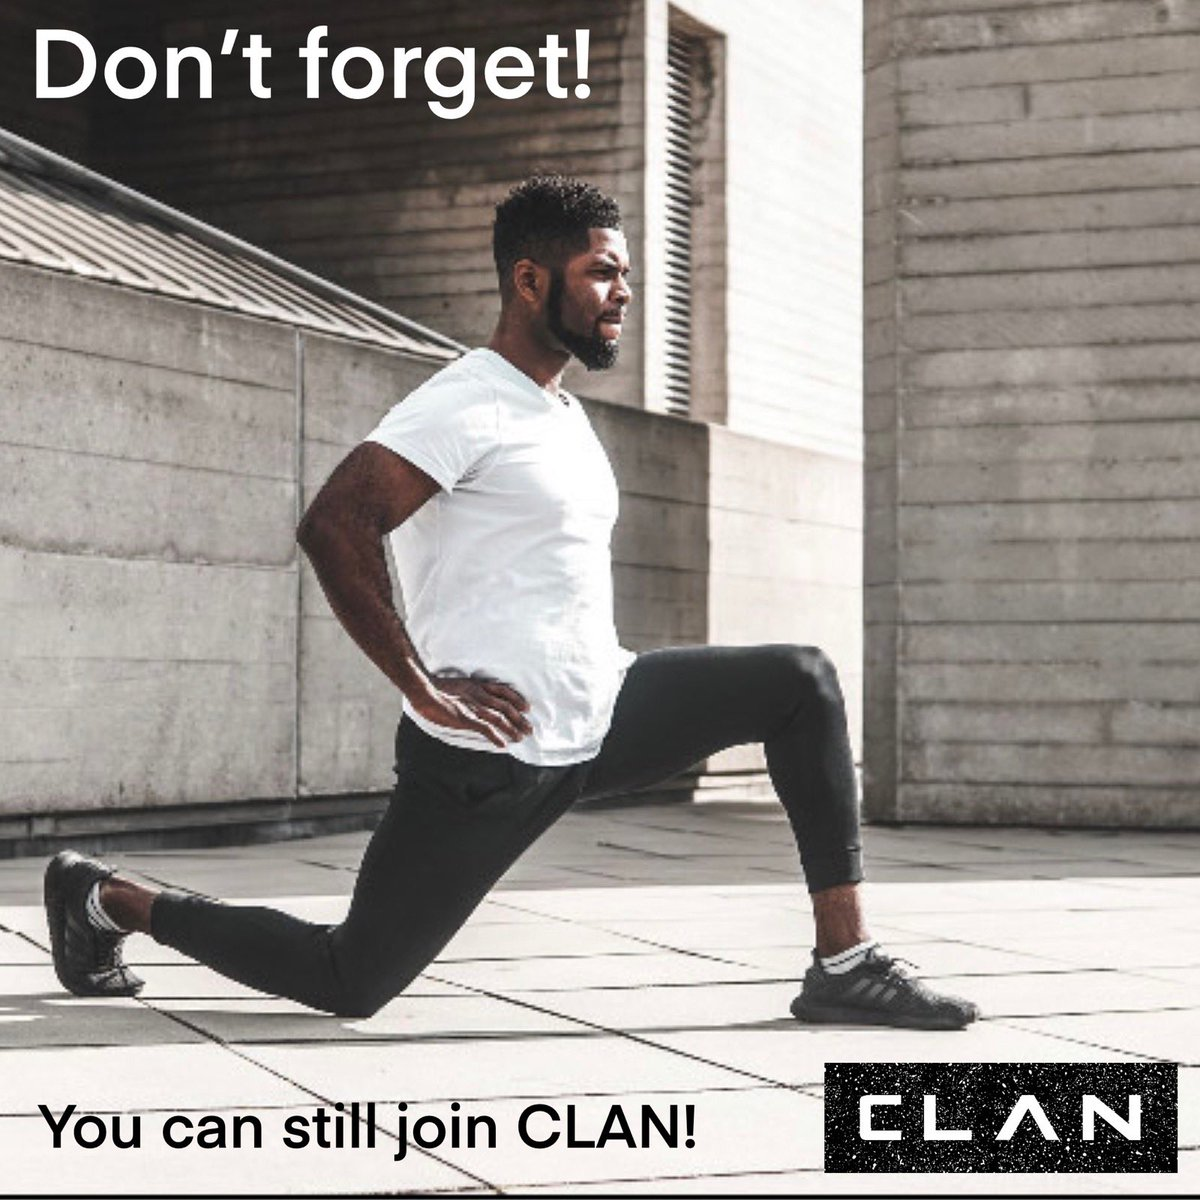 Don't forget to sign up to CLAN well being 💪🏽  This is a great way to keep your mental and physical health in shape and enjoy weekly workouts from the comfort of your home!  Remember 10% of your sign-up fee will be donated to Wellwater🤗  #tuesdayvibe